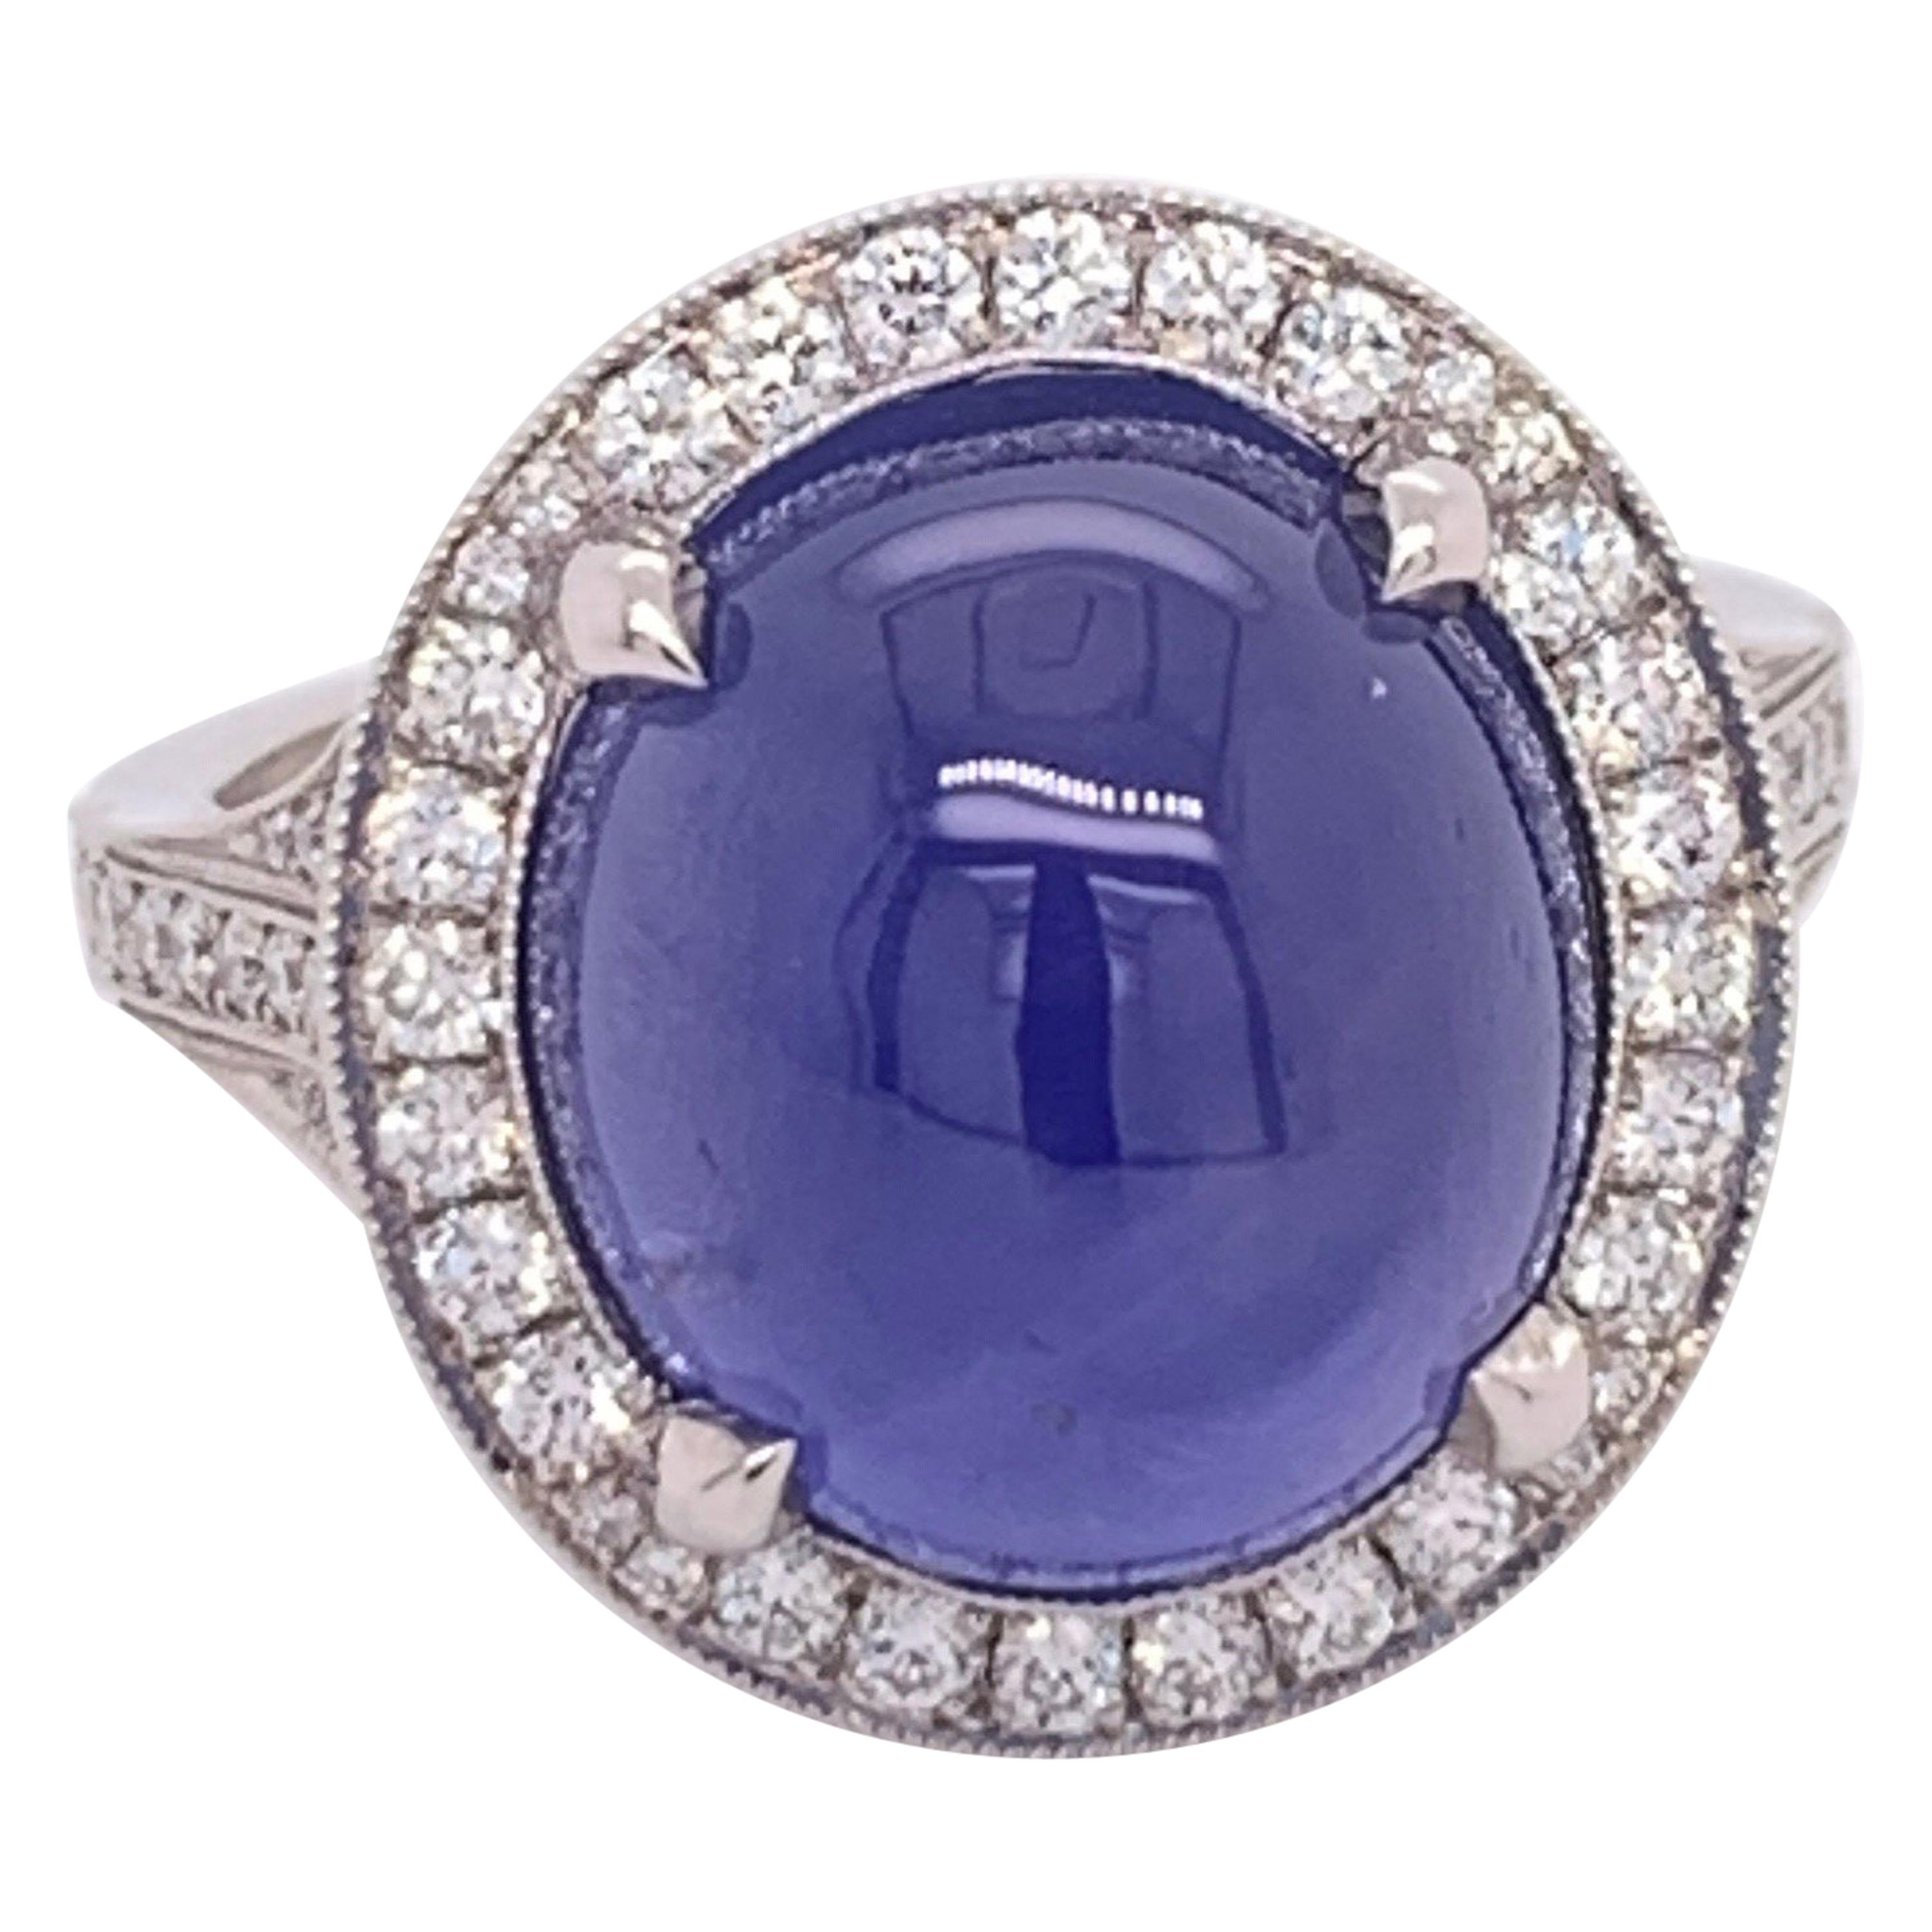 Platinum 10.80 Carat GIA Certified No Heat Blue Star Sapphire CAB & Diamond Ring